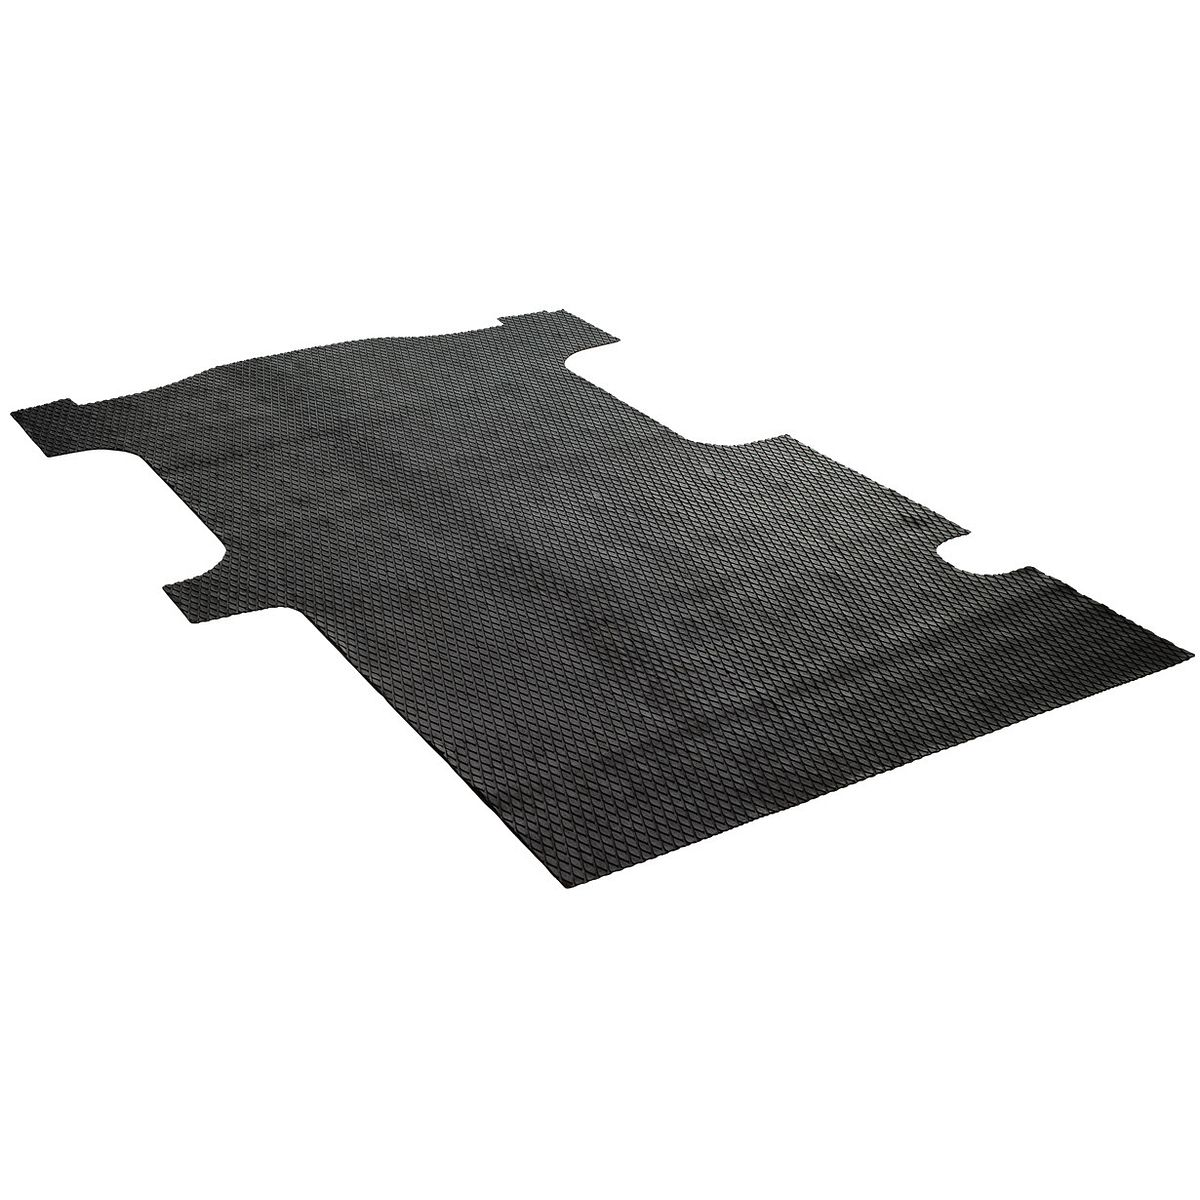 medium resolution of van floor mats are designed to fit the specific van bed and wheel base